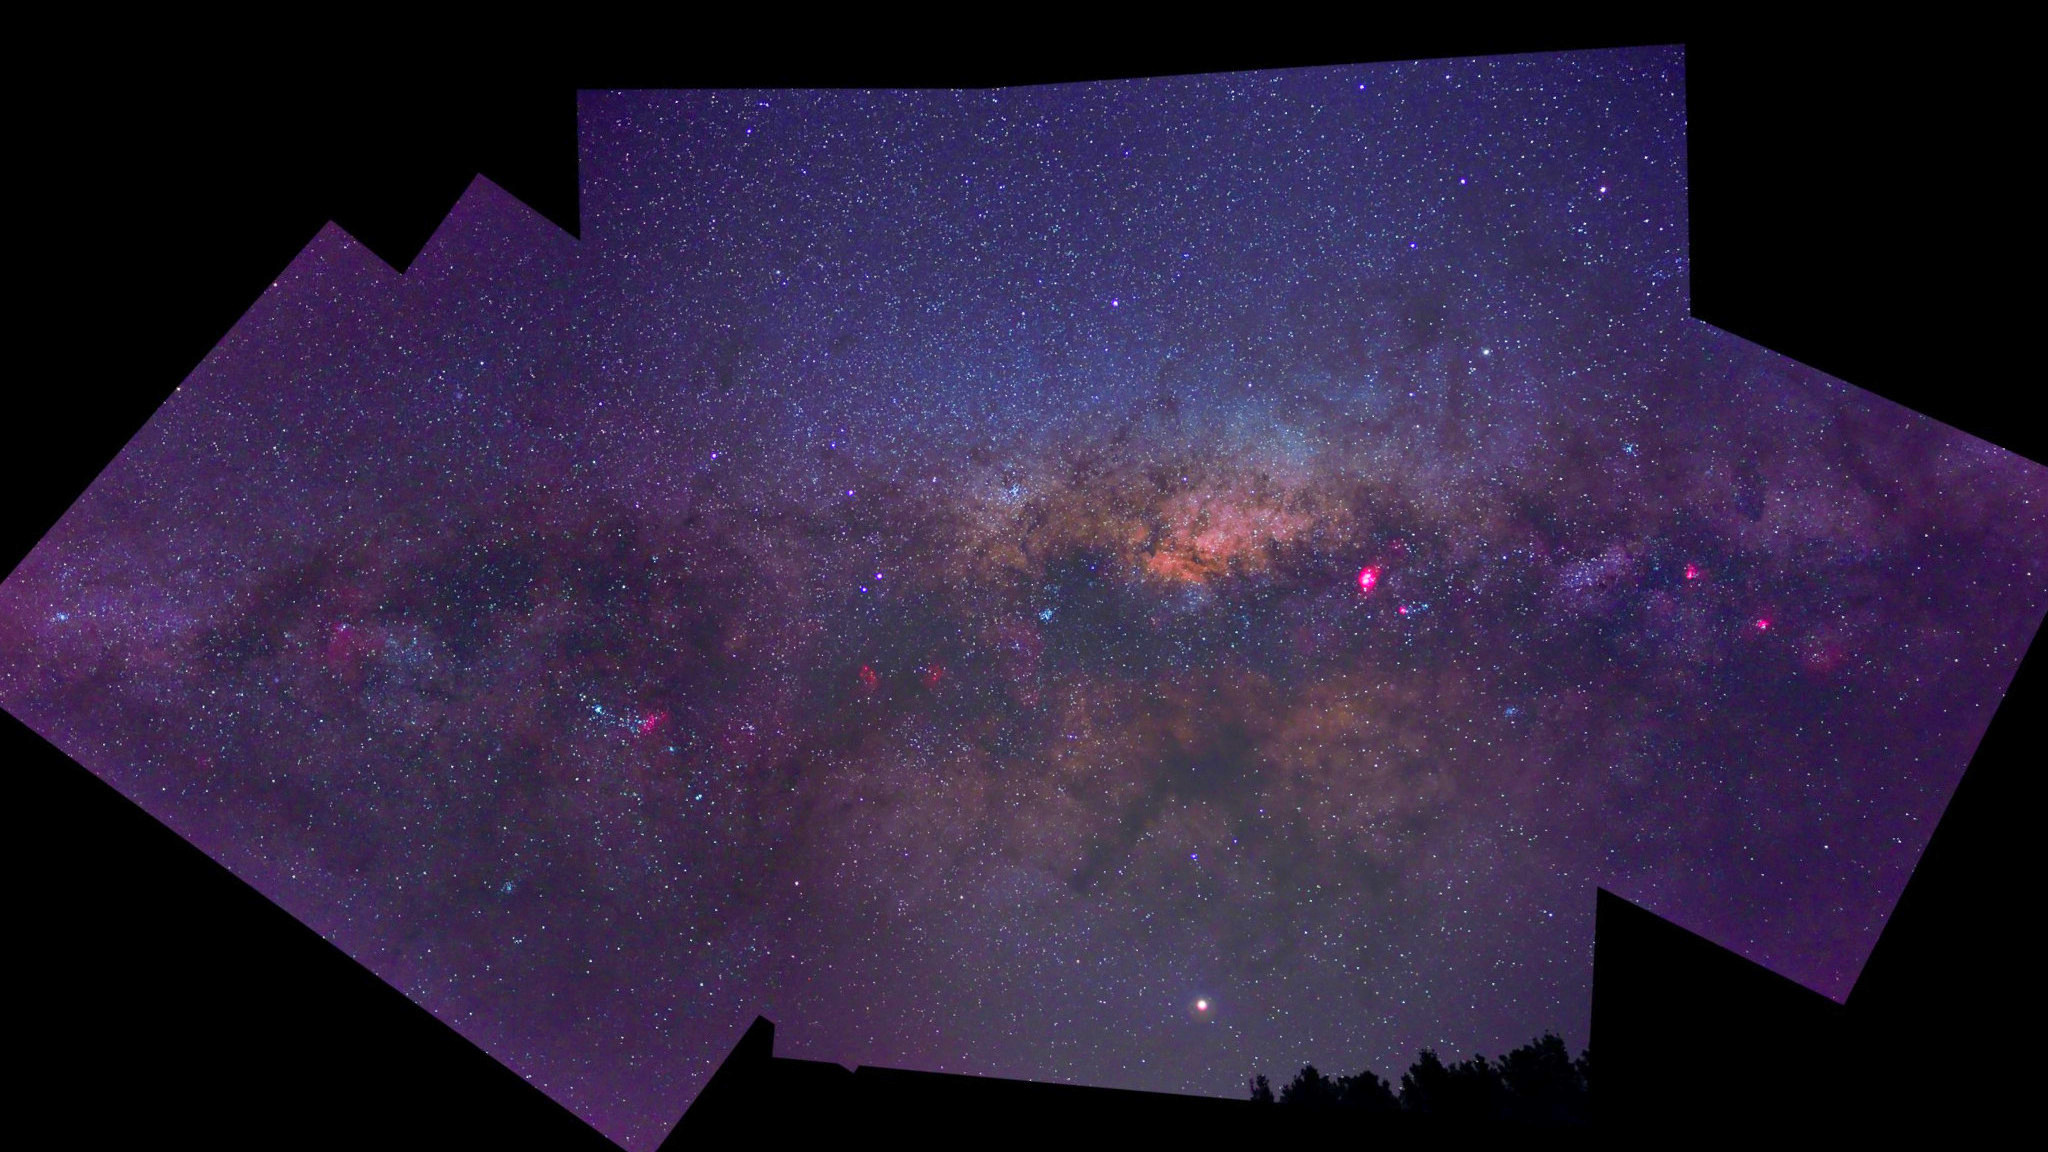 Milky Way Stitch 20190929-1001C.jpg